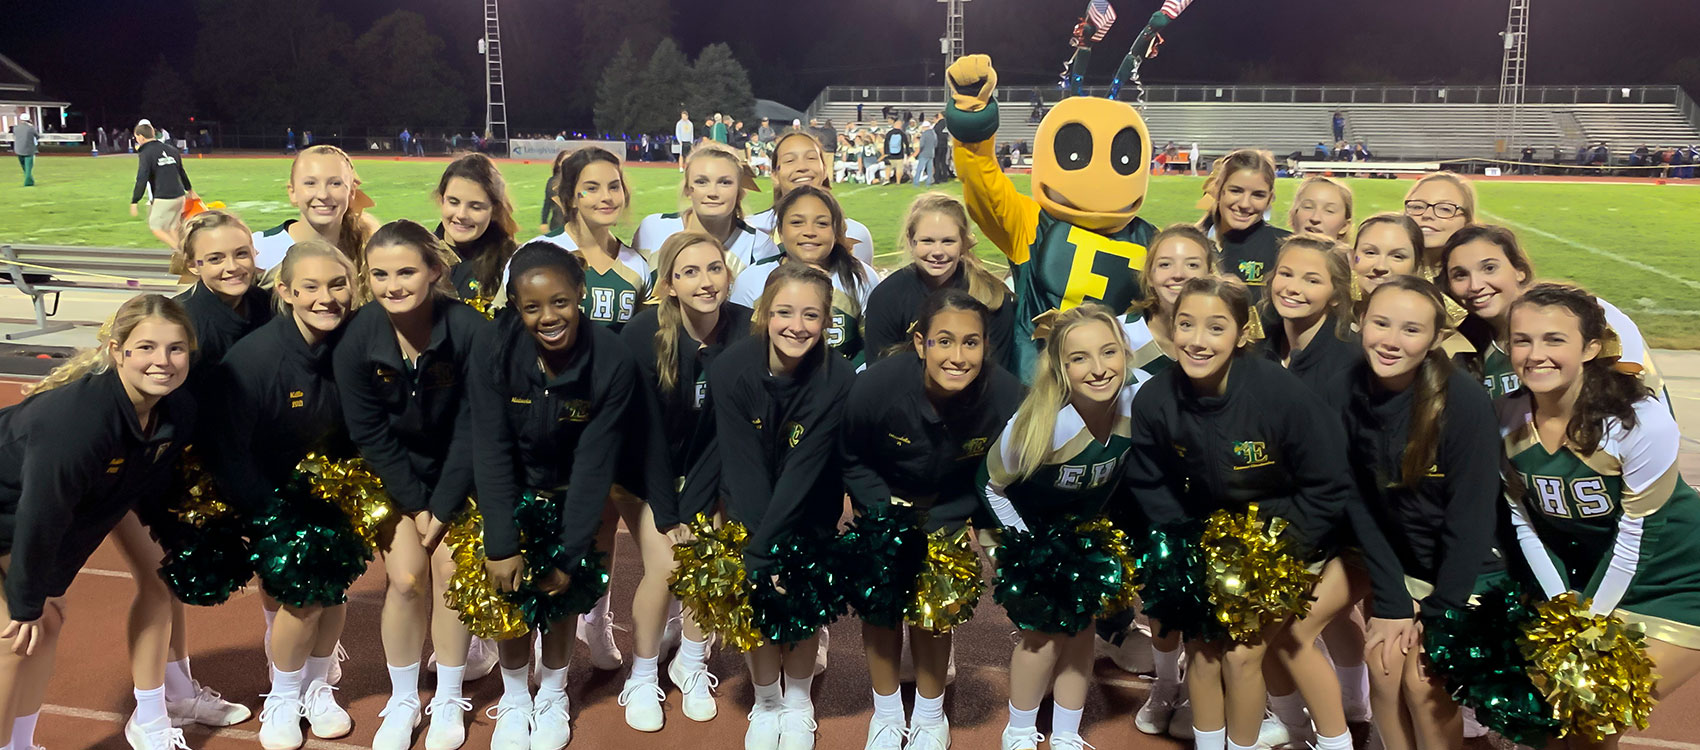 EHS cheearleaders and mascot